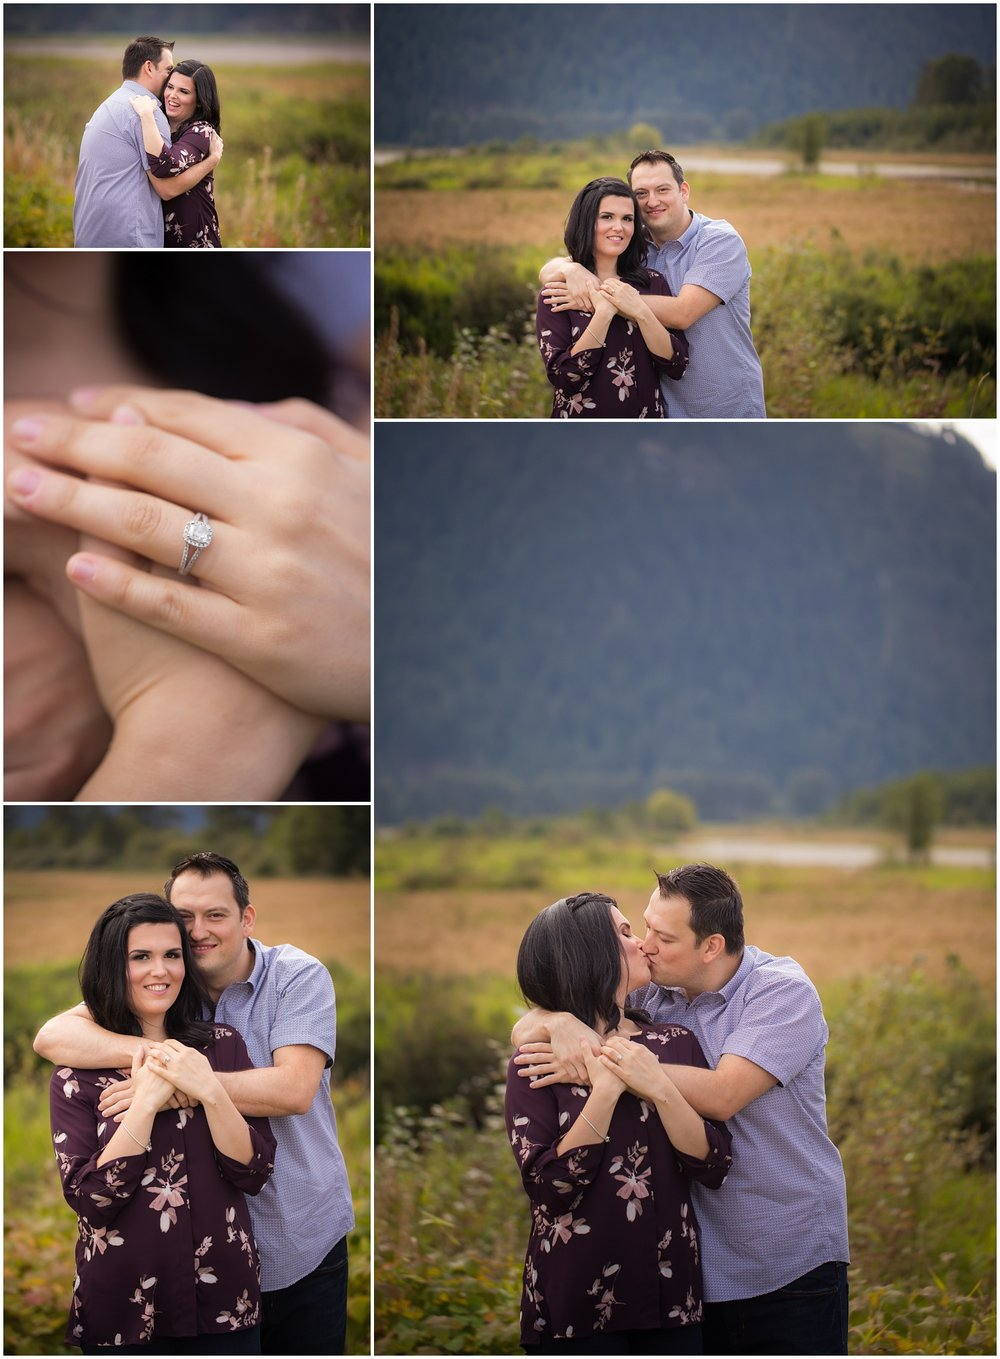 Amazing Day Photography - Pitt Lake Engagement Session - Langley Engagement Photographer (3).jpg